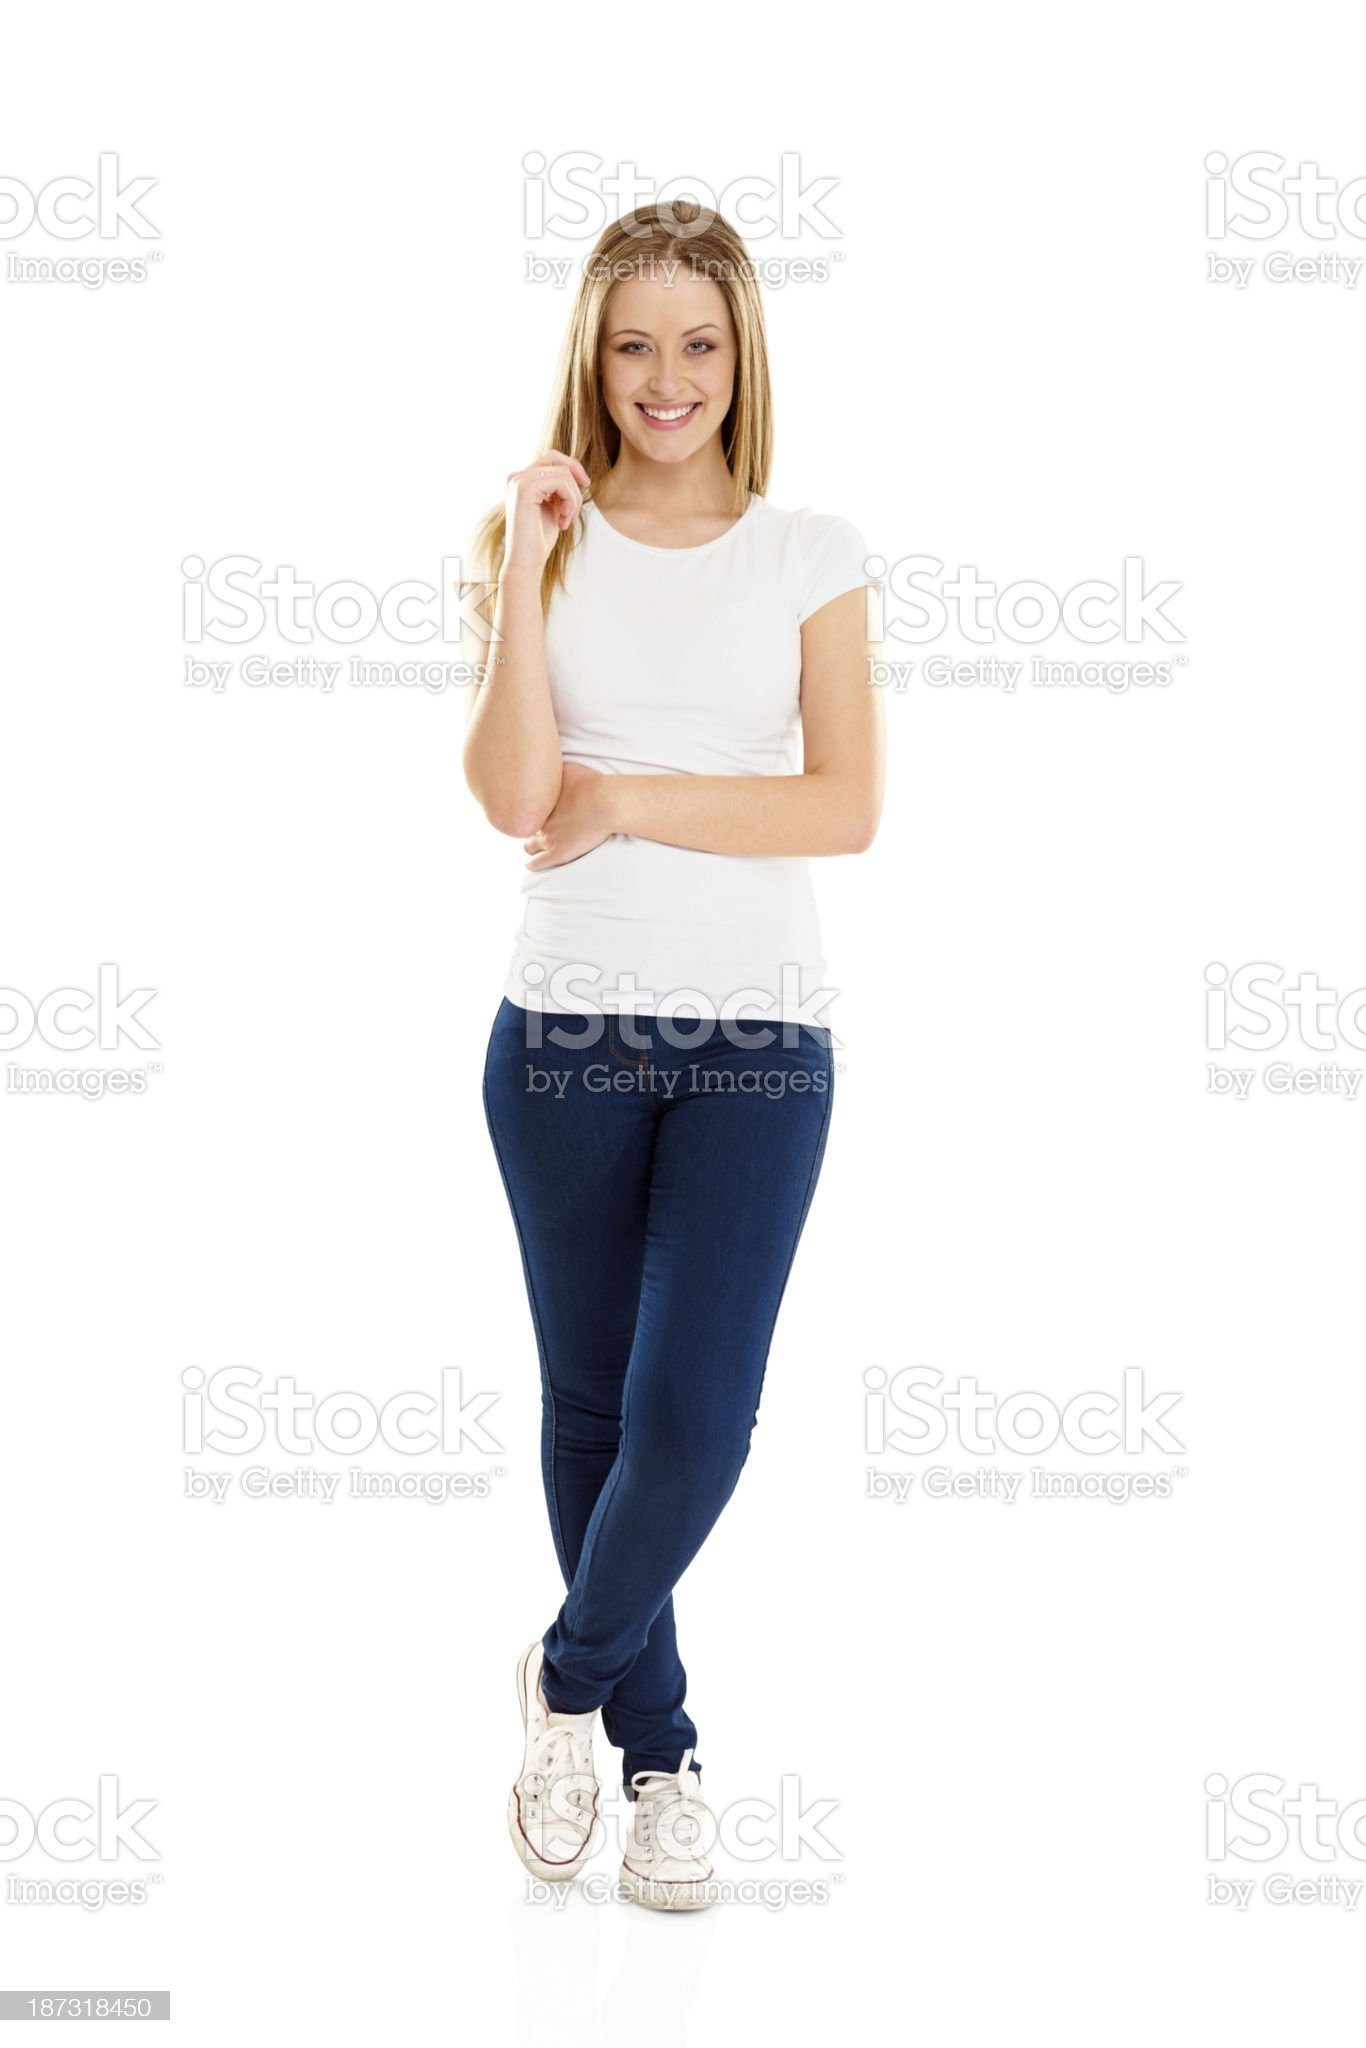 Portrait of cute young girl royalty-free stock photo